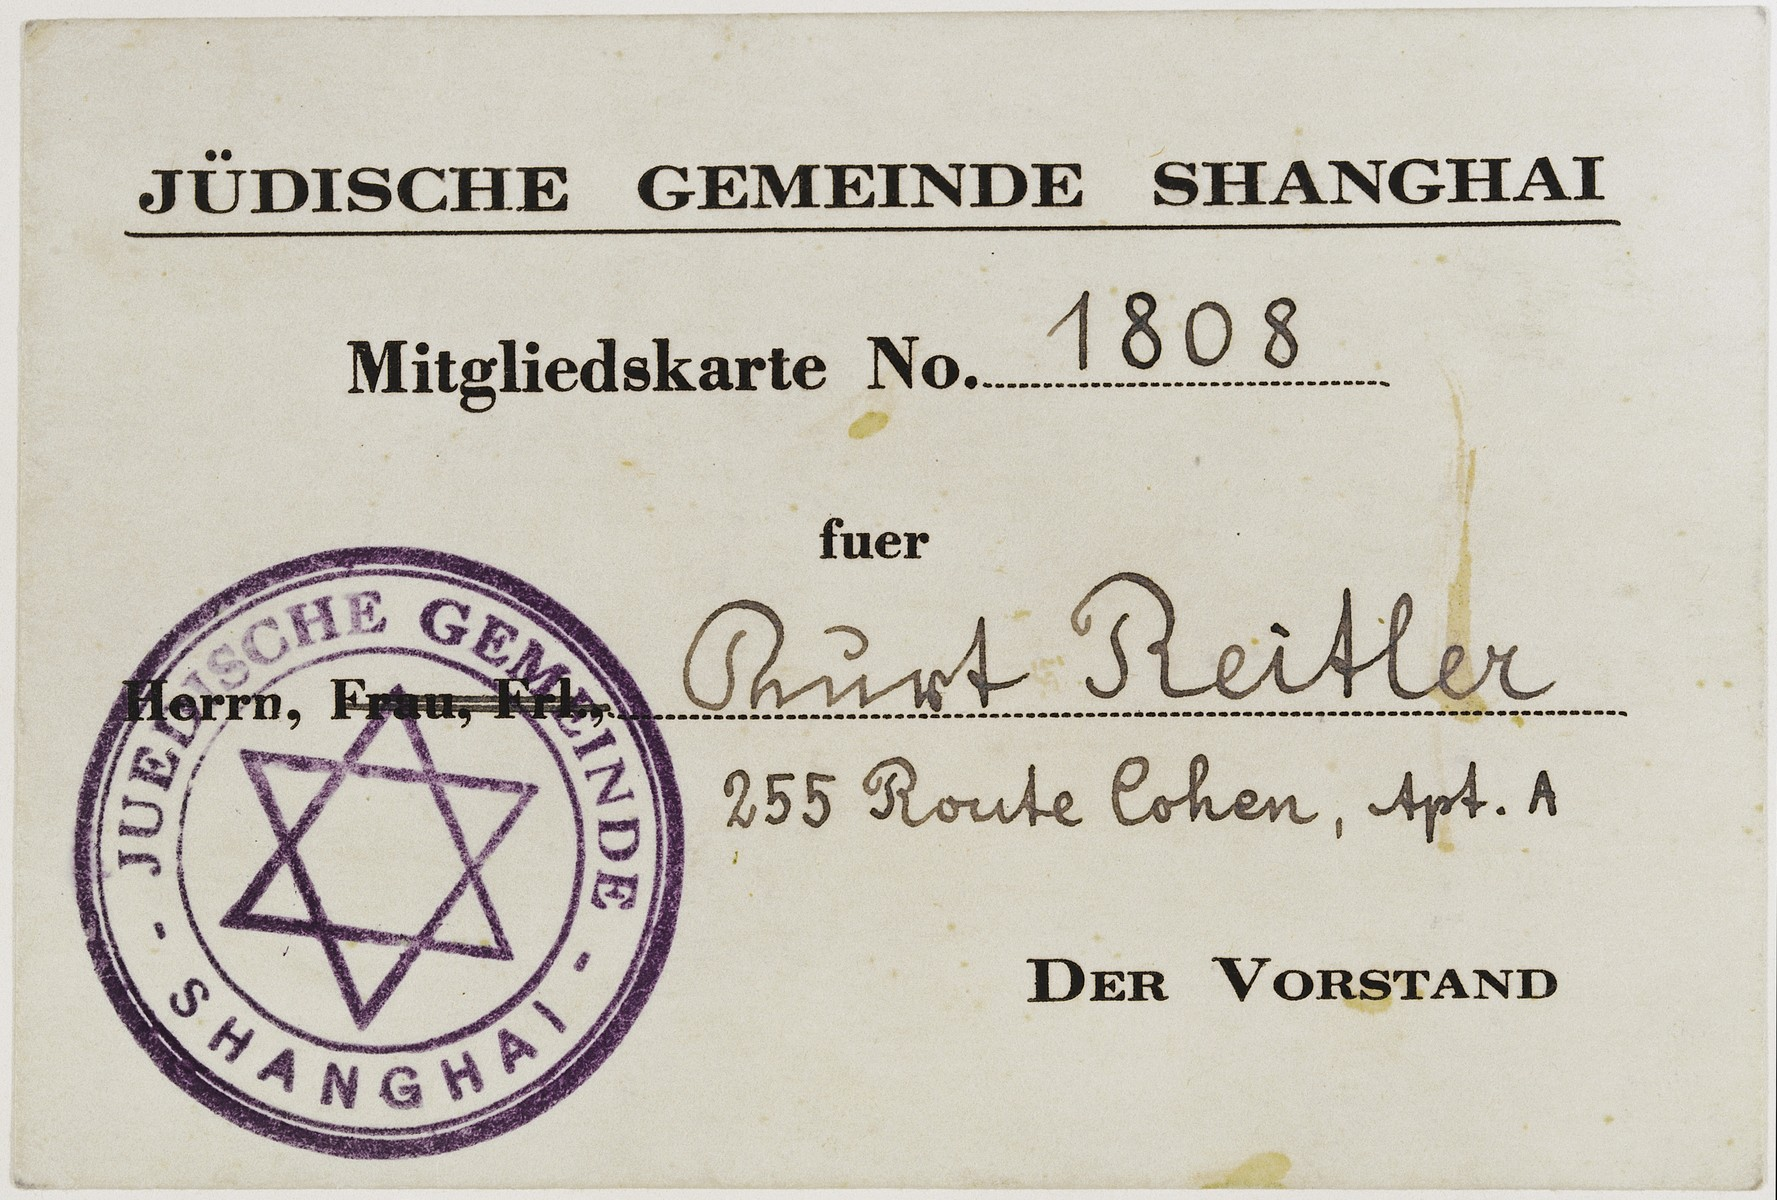 Shanghai Jewish community membership card issued to Jewish refugee Kurt Reitler.